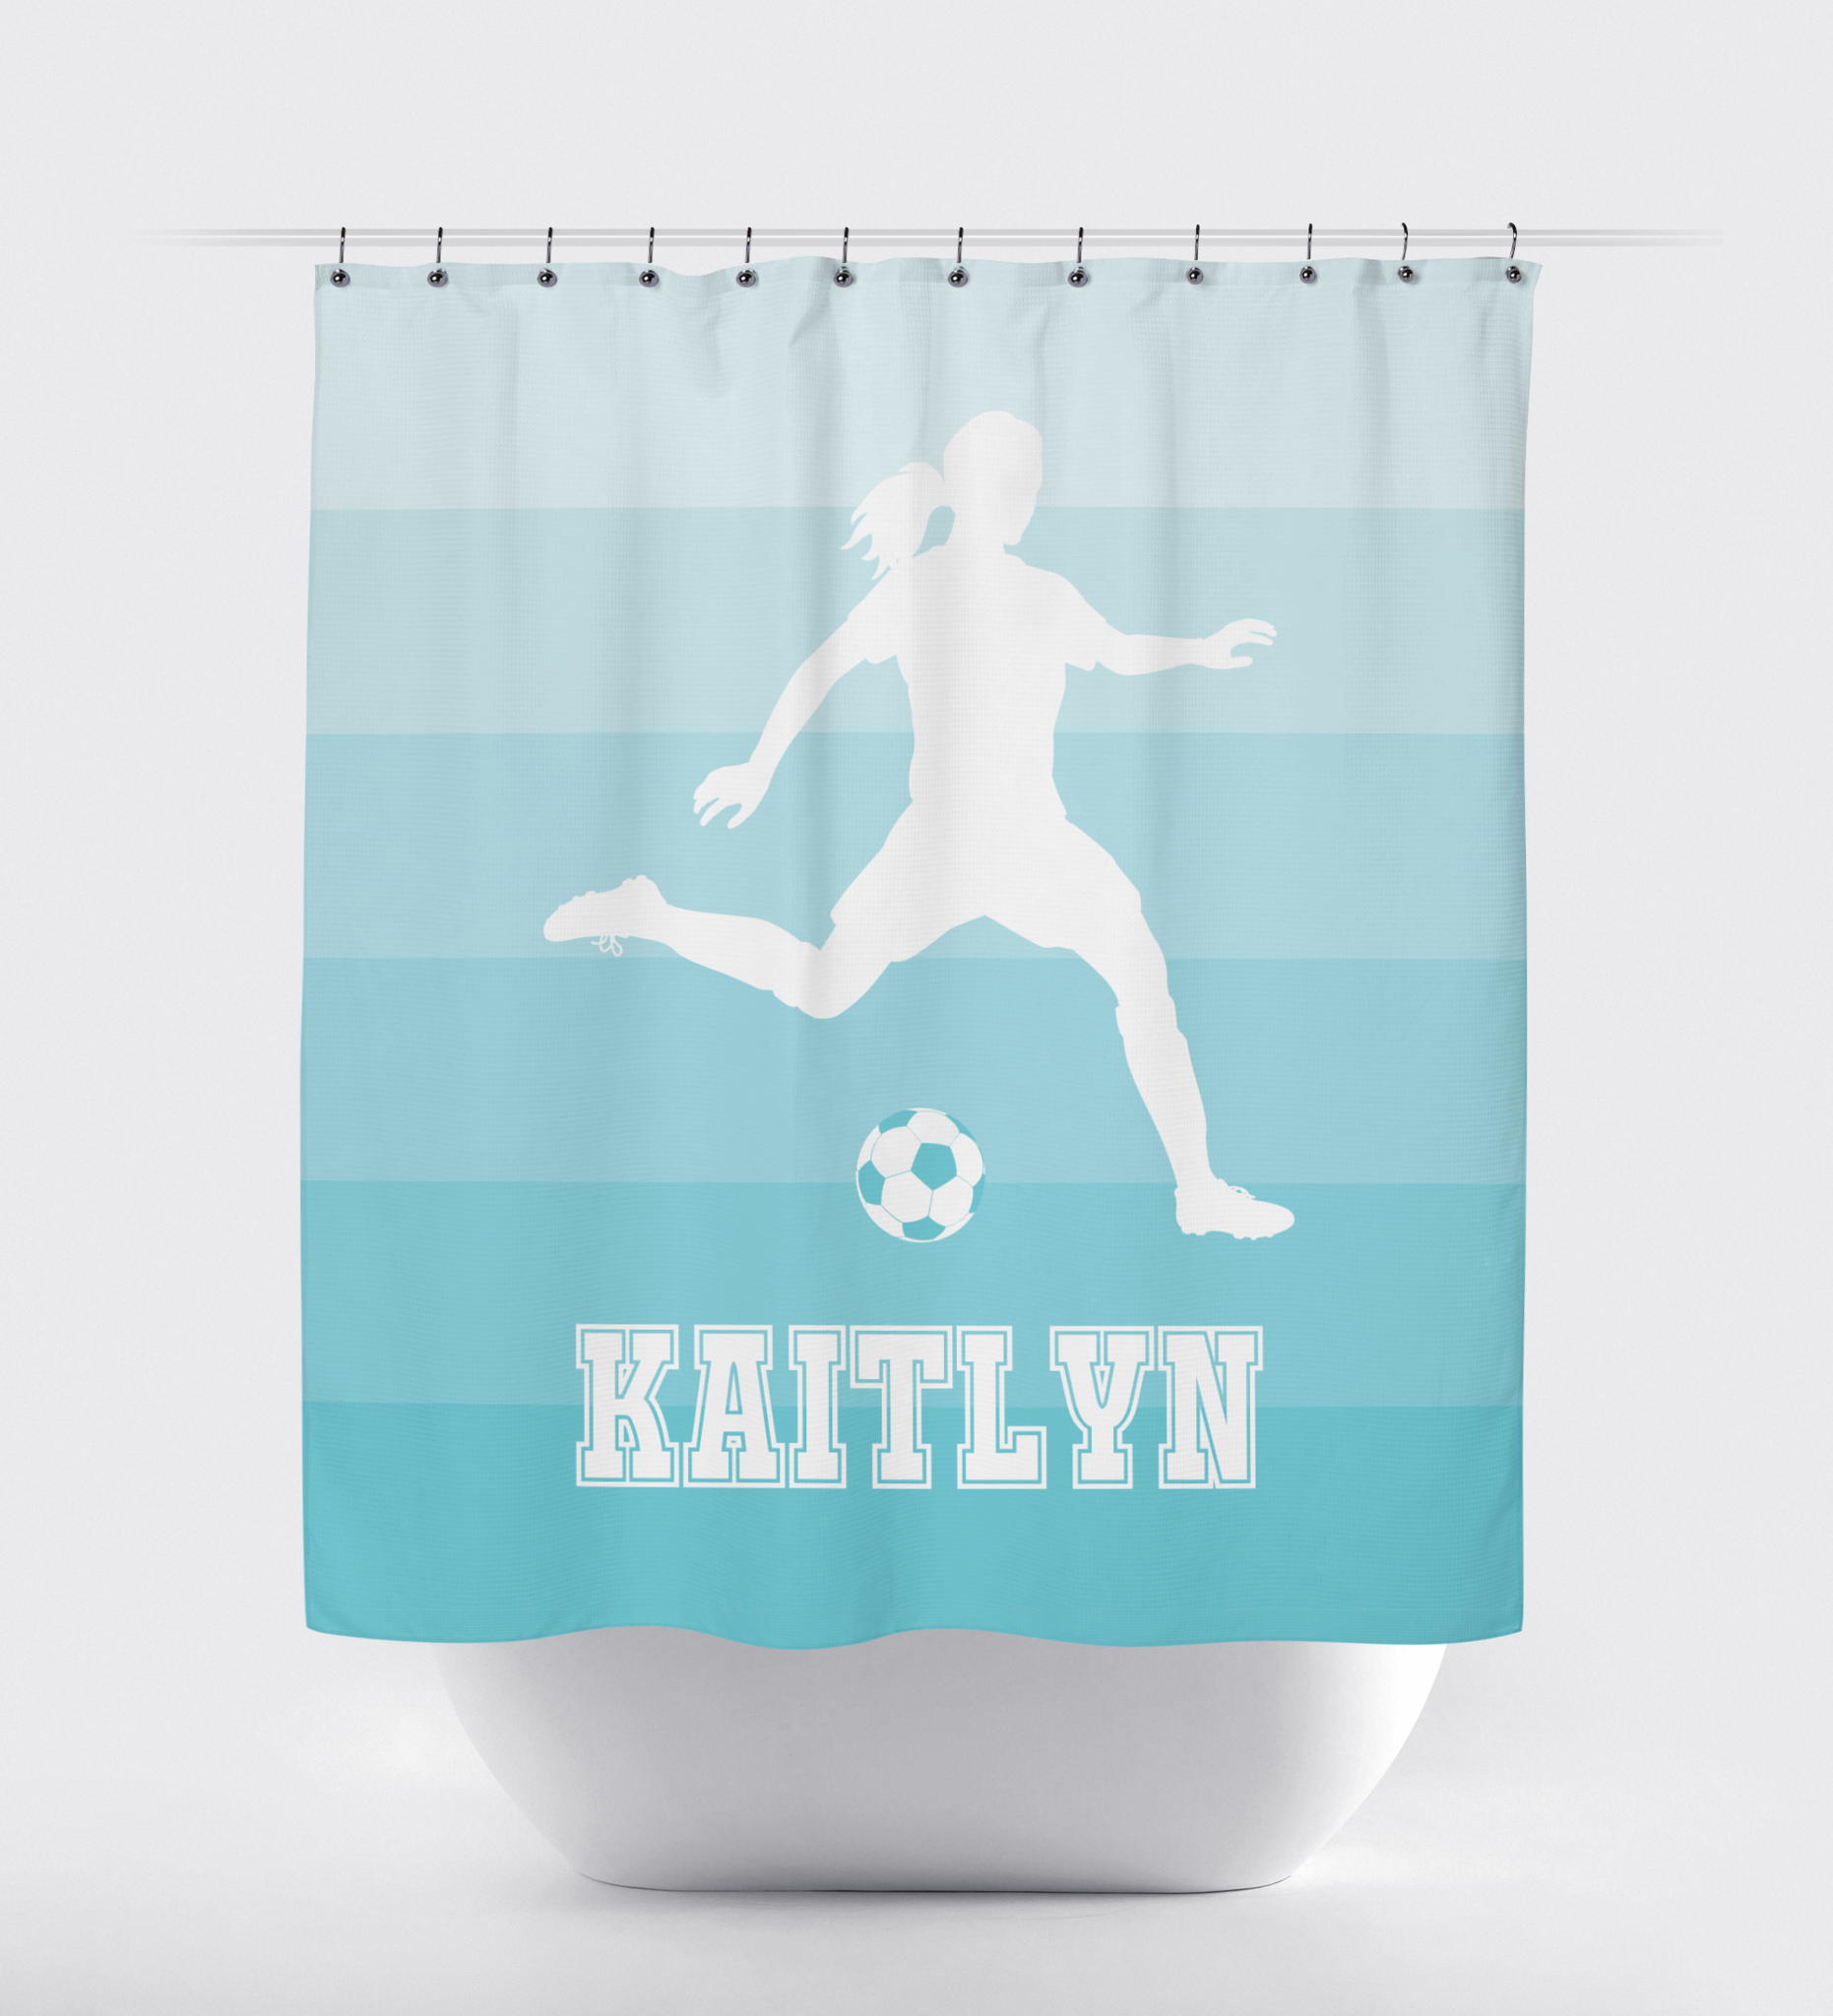 Light pink shower curtain -  Light Pink Ombr Striped Shower Curtain Soccer Player Girls Teens White Aqua